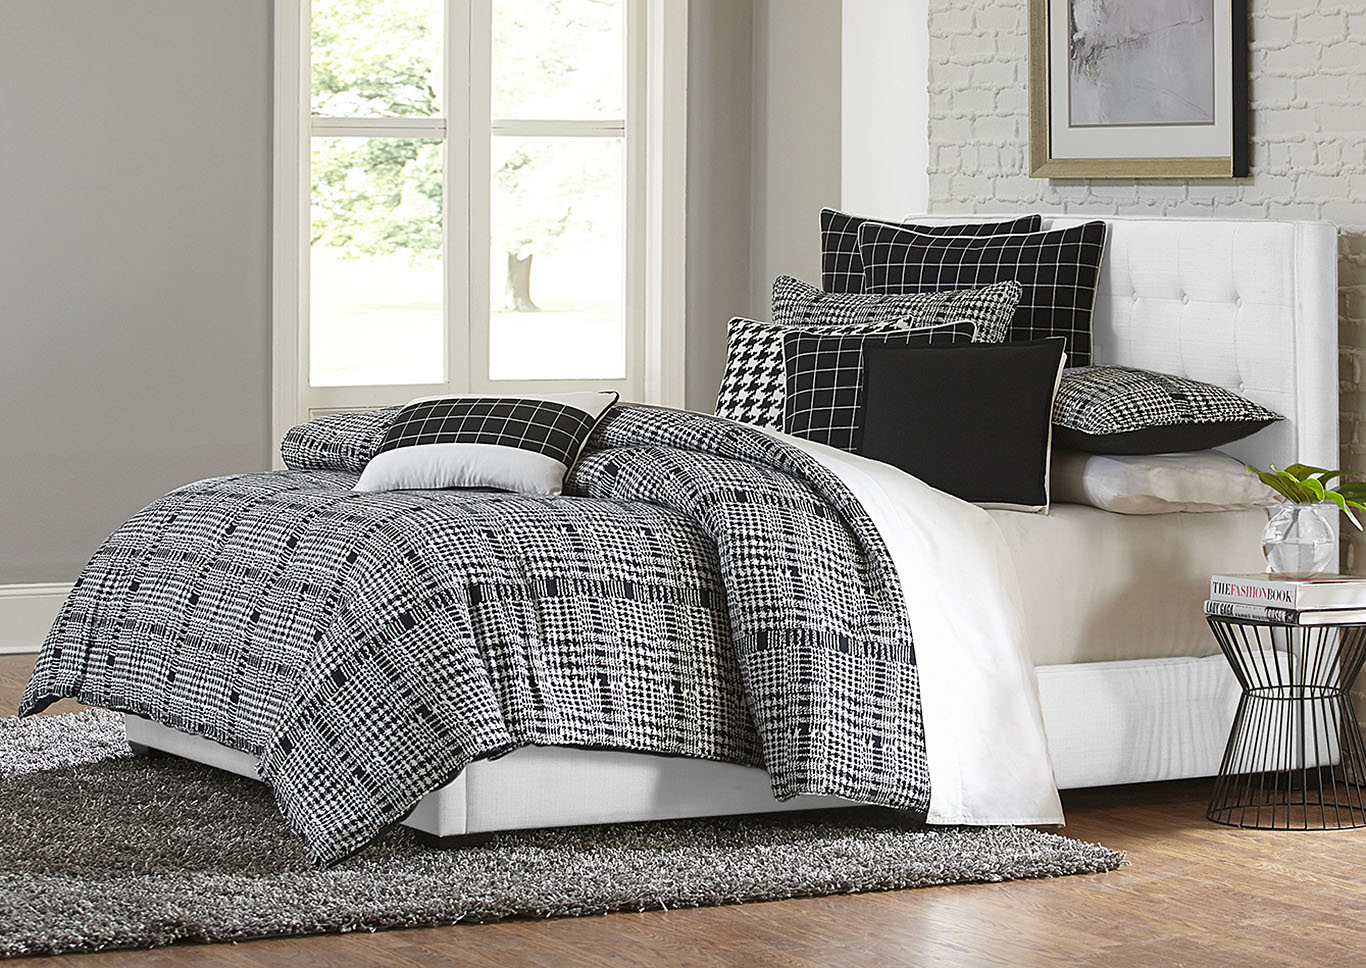 Lucianna Nori 9 pc. Queen Comforter Set,AICO